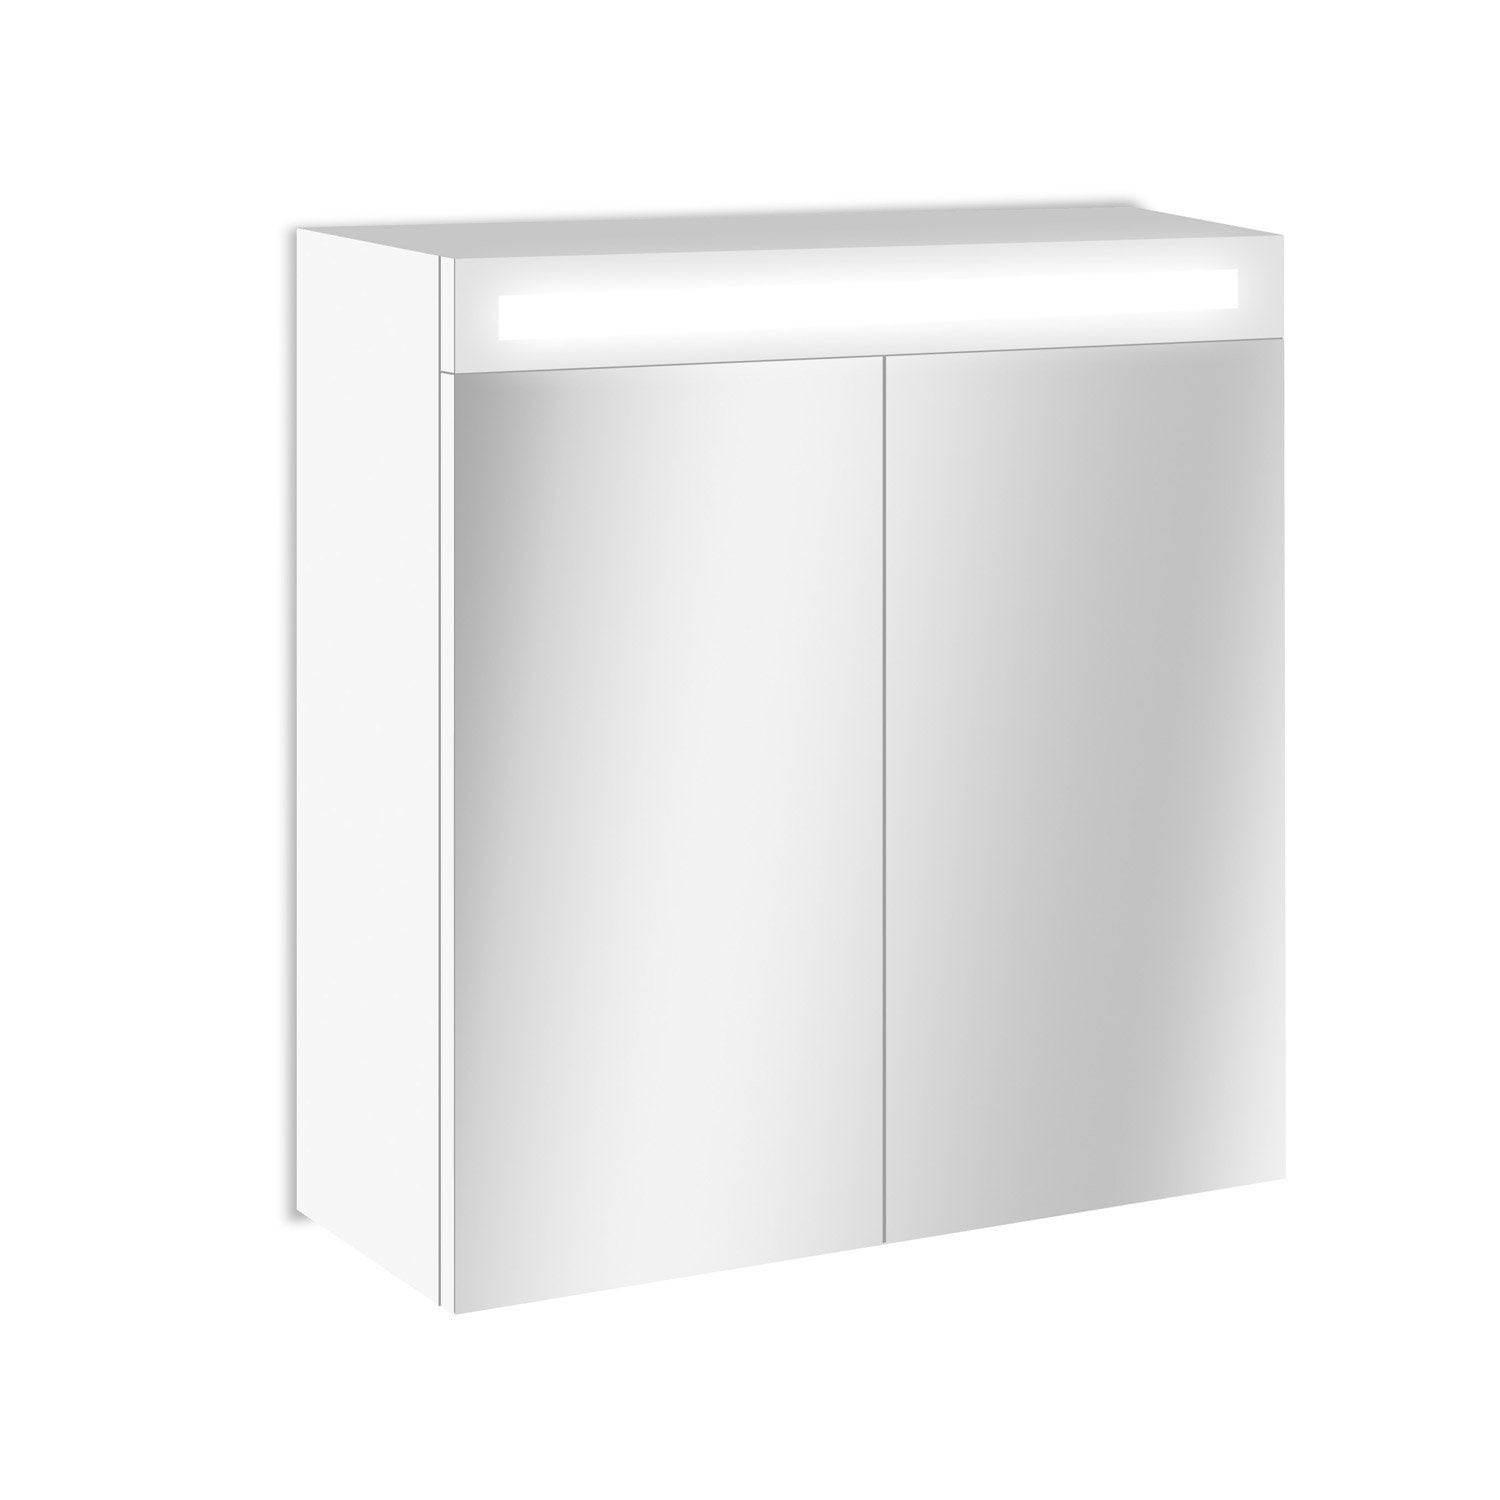 Armoires de toilettes leroy merlin simple plan de toilette leroy merlin with - Armoires de toilettes leroy merlin ...